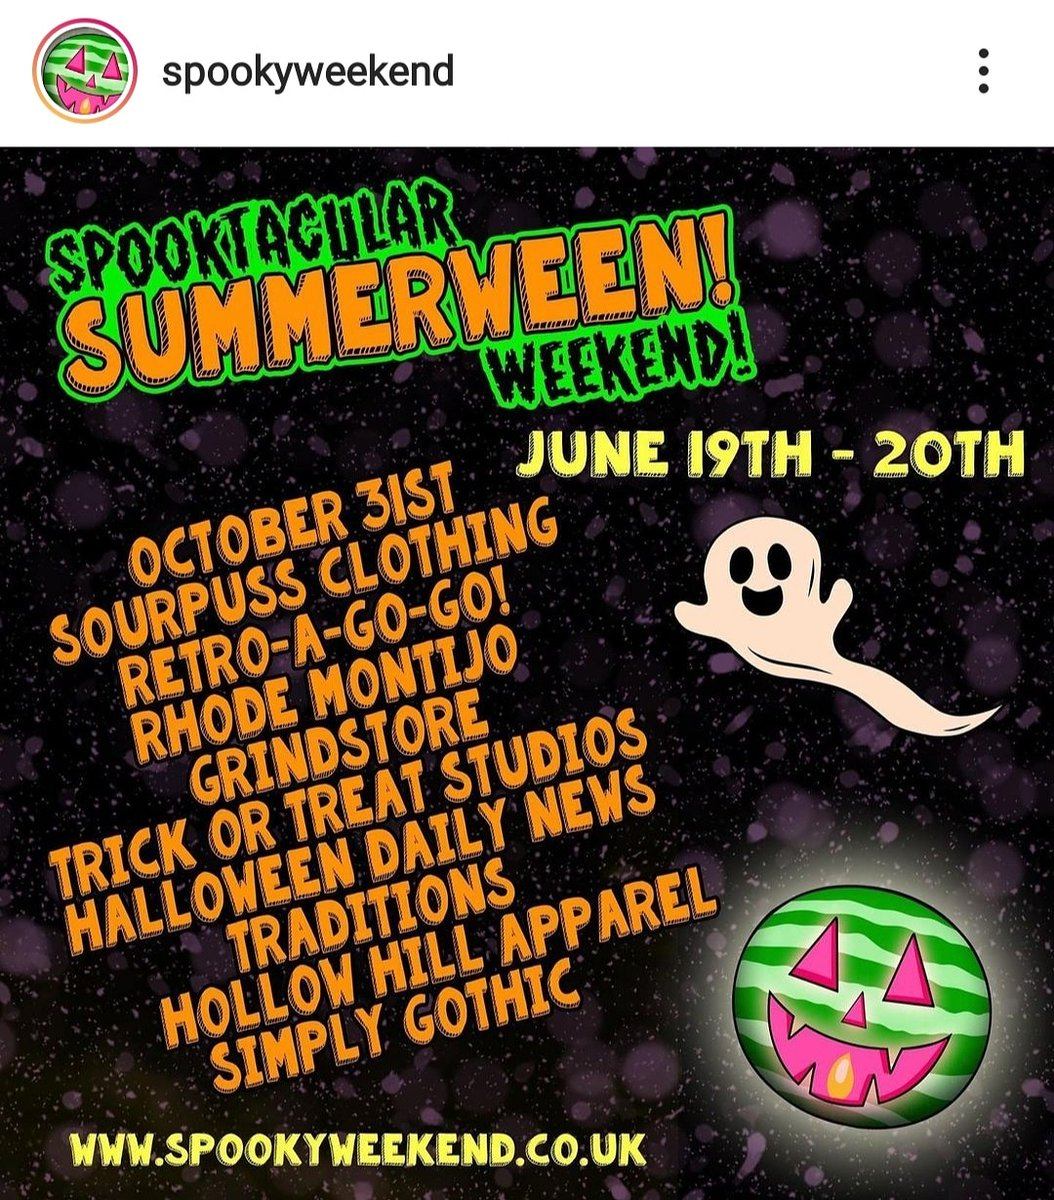 Check out @SpookyWeekend Spooktacular Summerween Weekend for the best Halloween sales, deals, discounts, giveaways, and prizes for the next two days!  @ #spookyweekend  #october31st #Halloween #halloweenlovers  #summerween #Halloweengiveaways #giveaway  #prizes  #sales https://t.co/JkcgOV7Adv